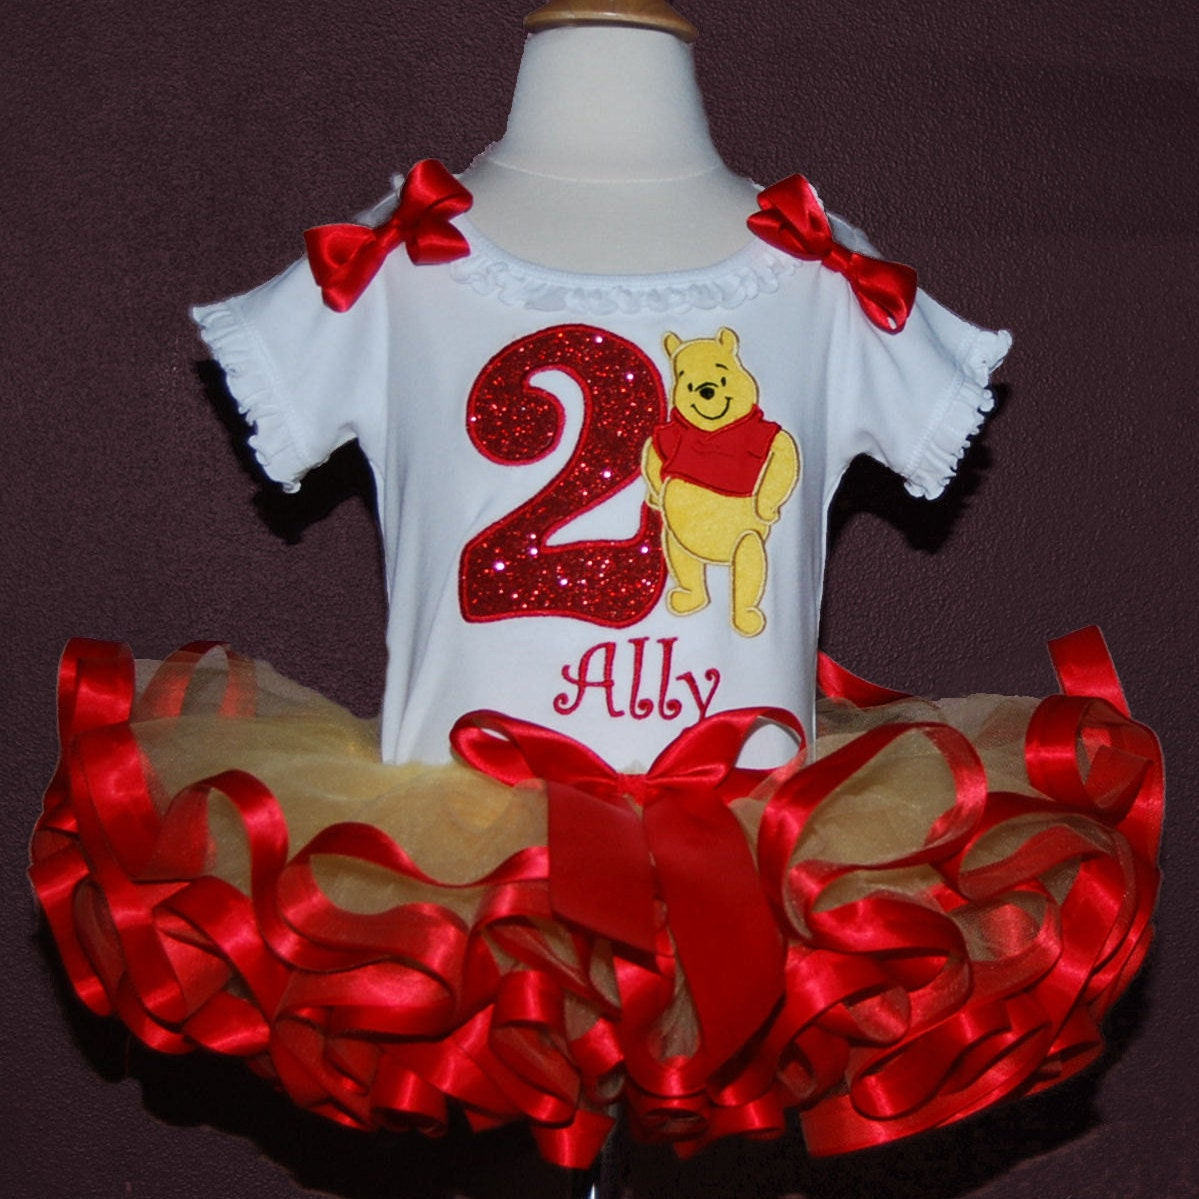 winnie the pooh birthday outfit, cake smash outfit girl, personalized winnie the pooh shirt, pooh bear shirt, 2nd birthday outfit girl, tutu